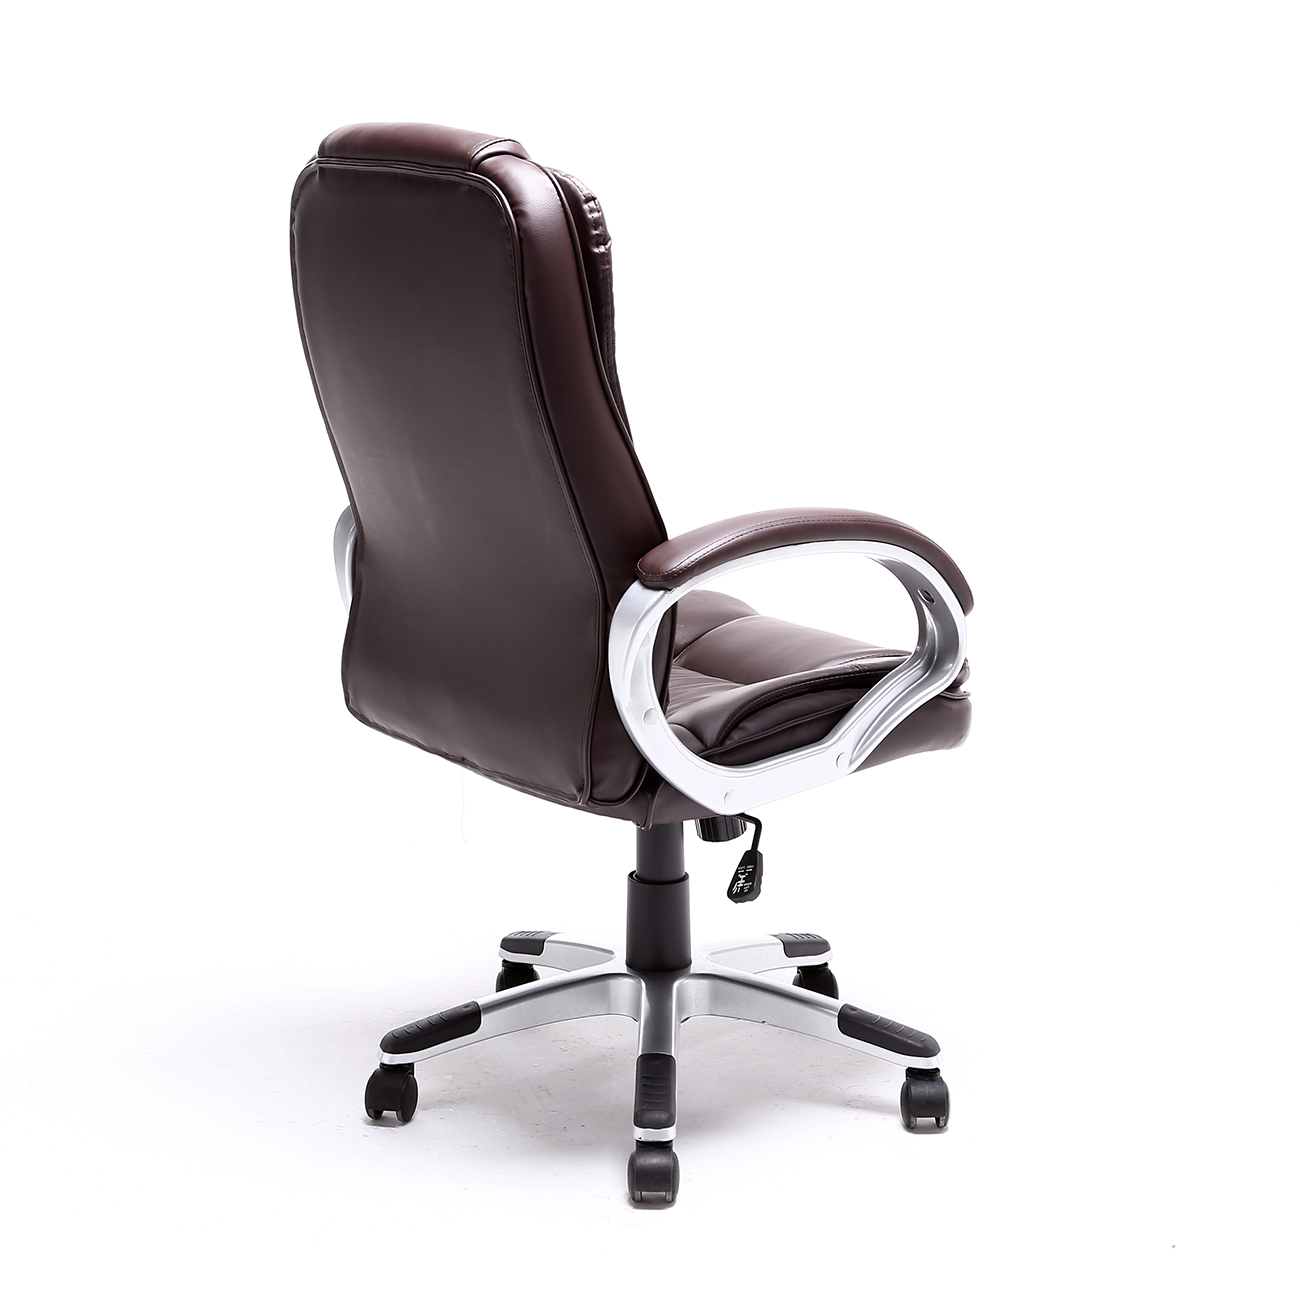 modern black leather desk chair stressless review uk brown white pu executive computer